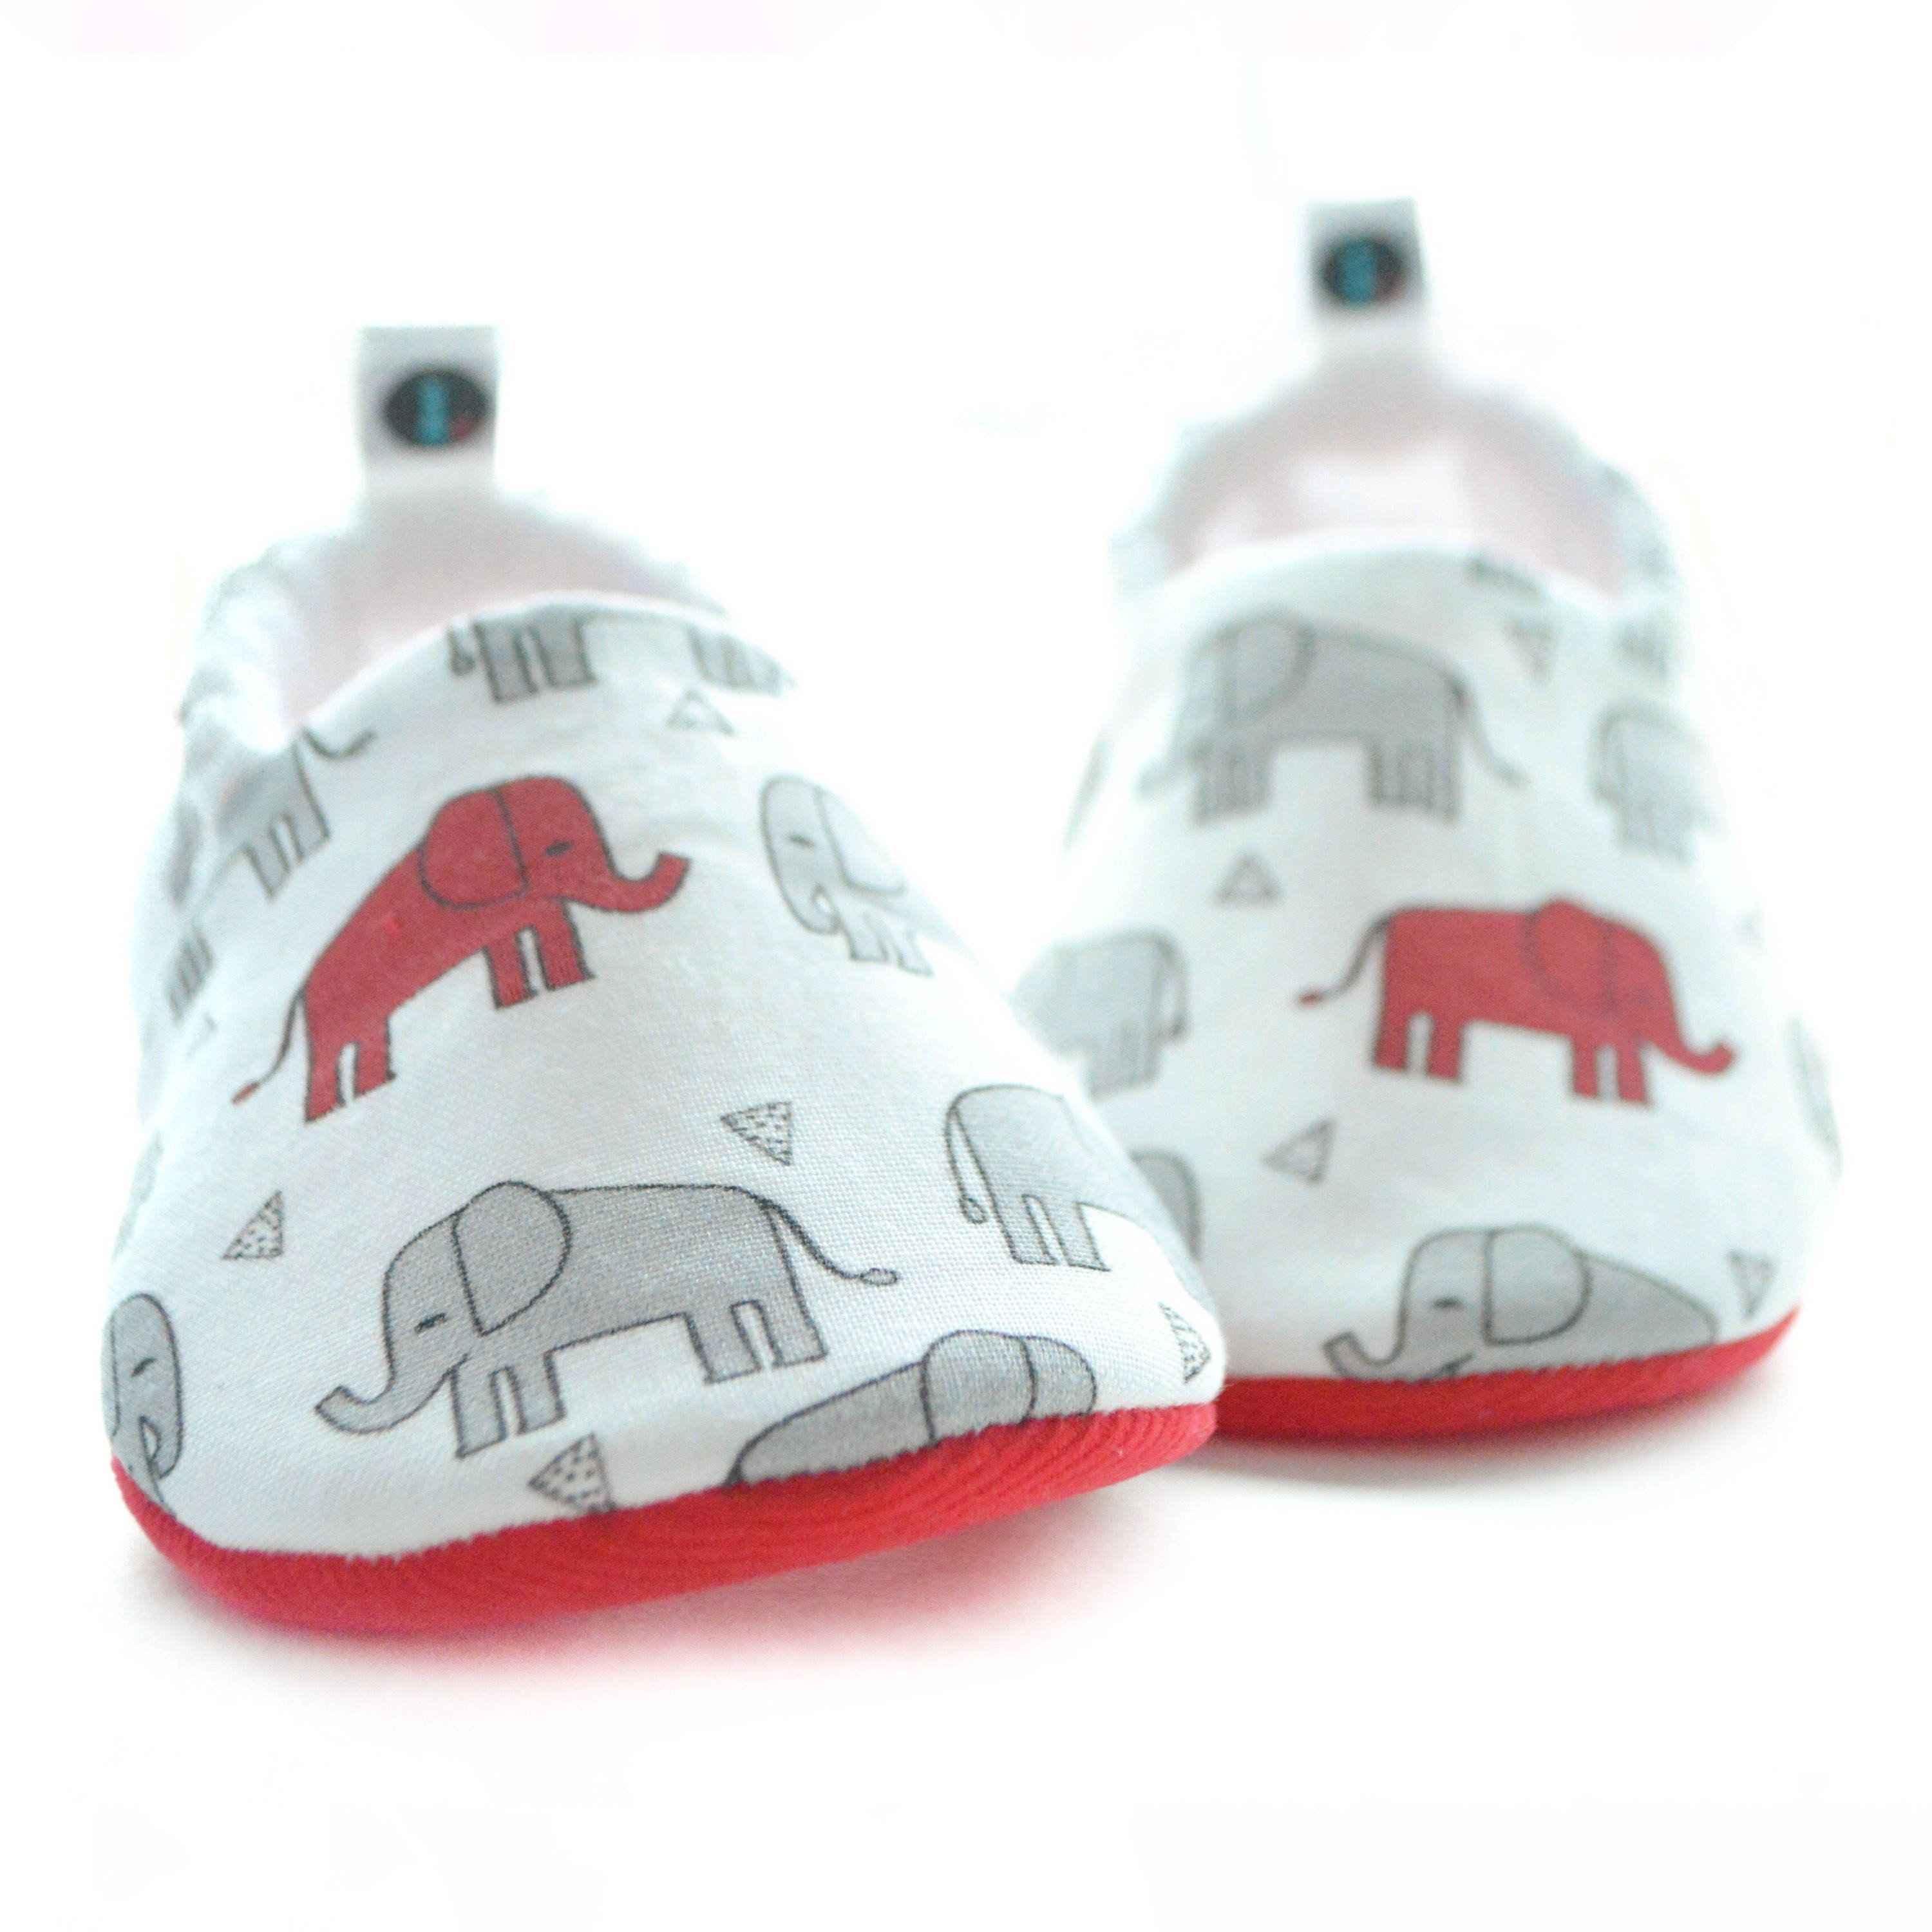 Elephant Baby Booties baby shoes gender neutral baby girl